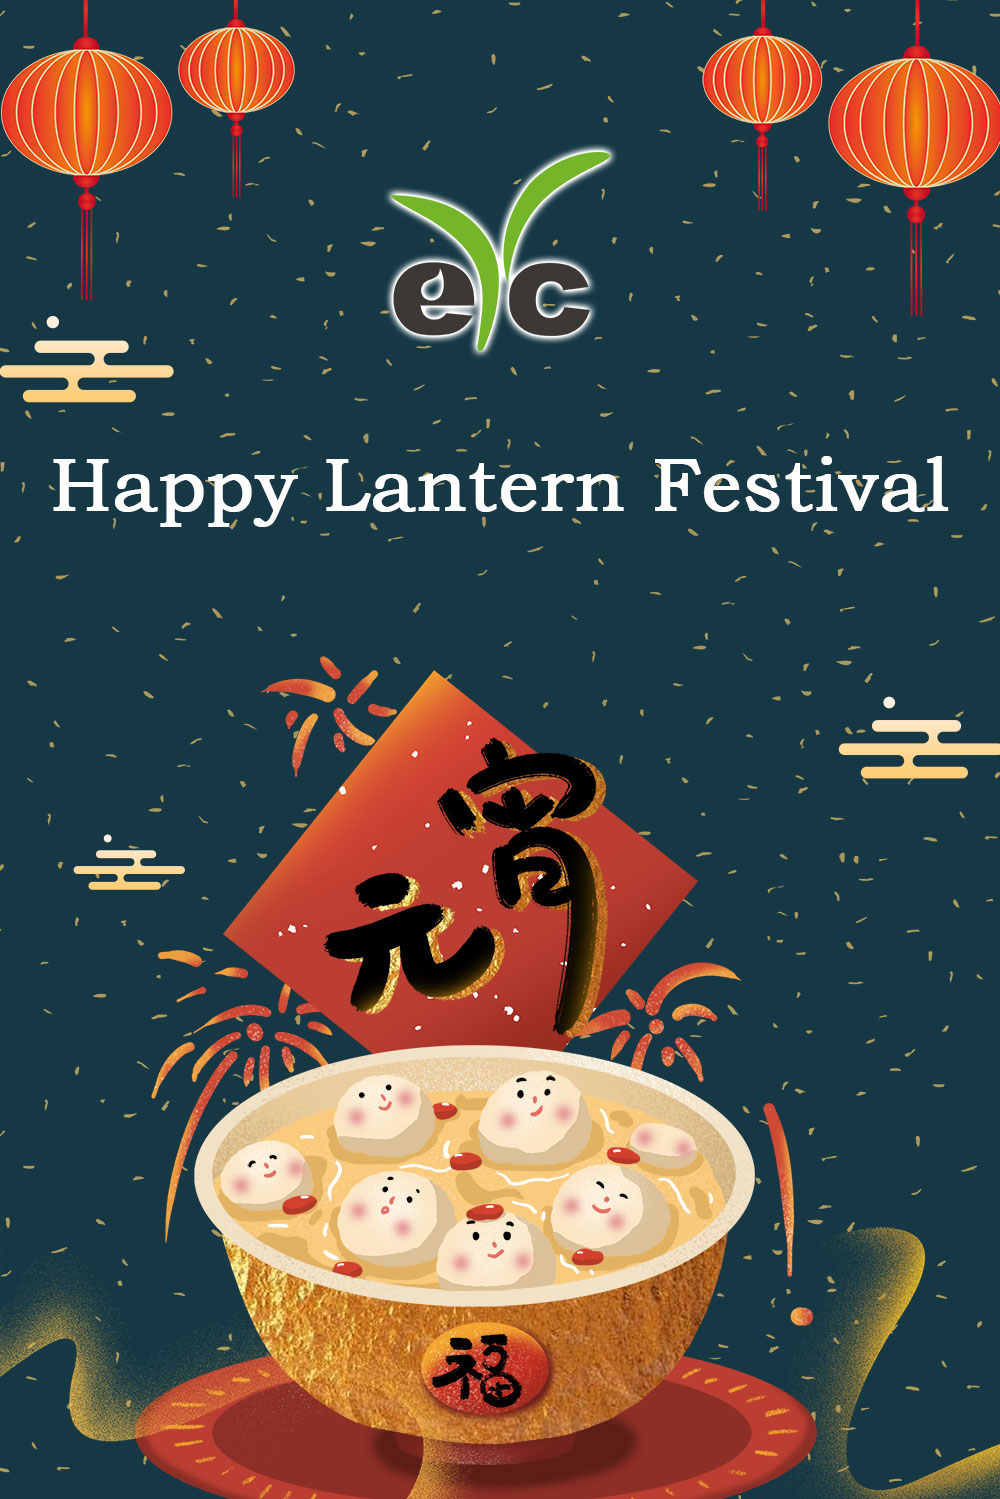 eYc Greeting Happy Lantern Festival